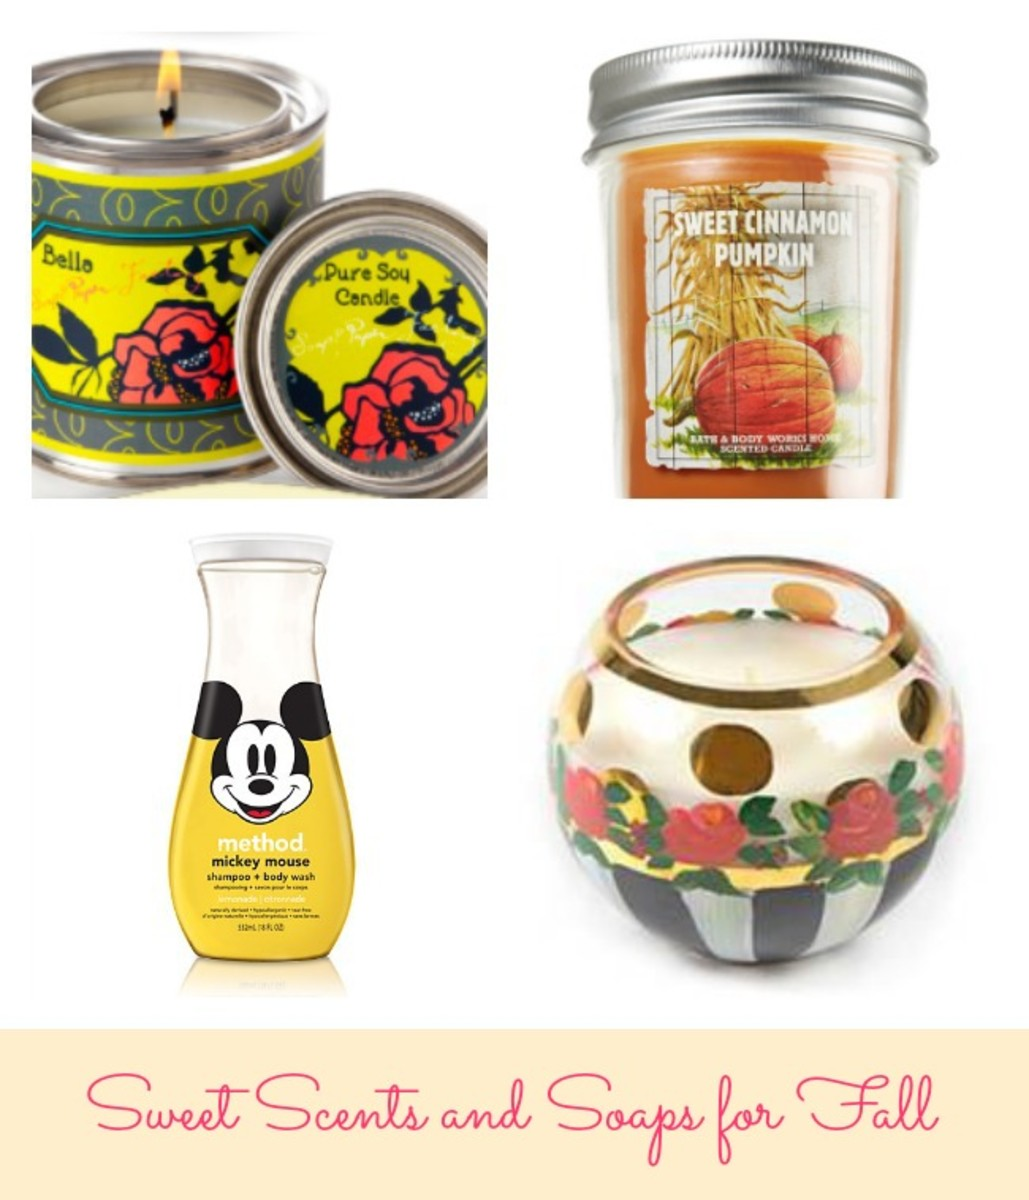 Scents for Fall